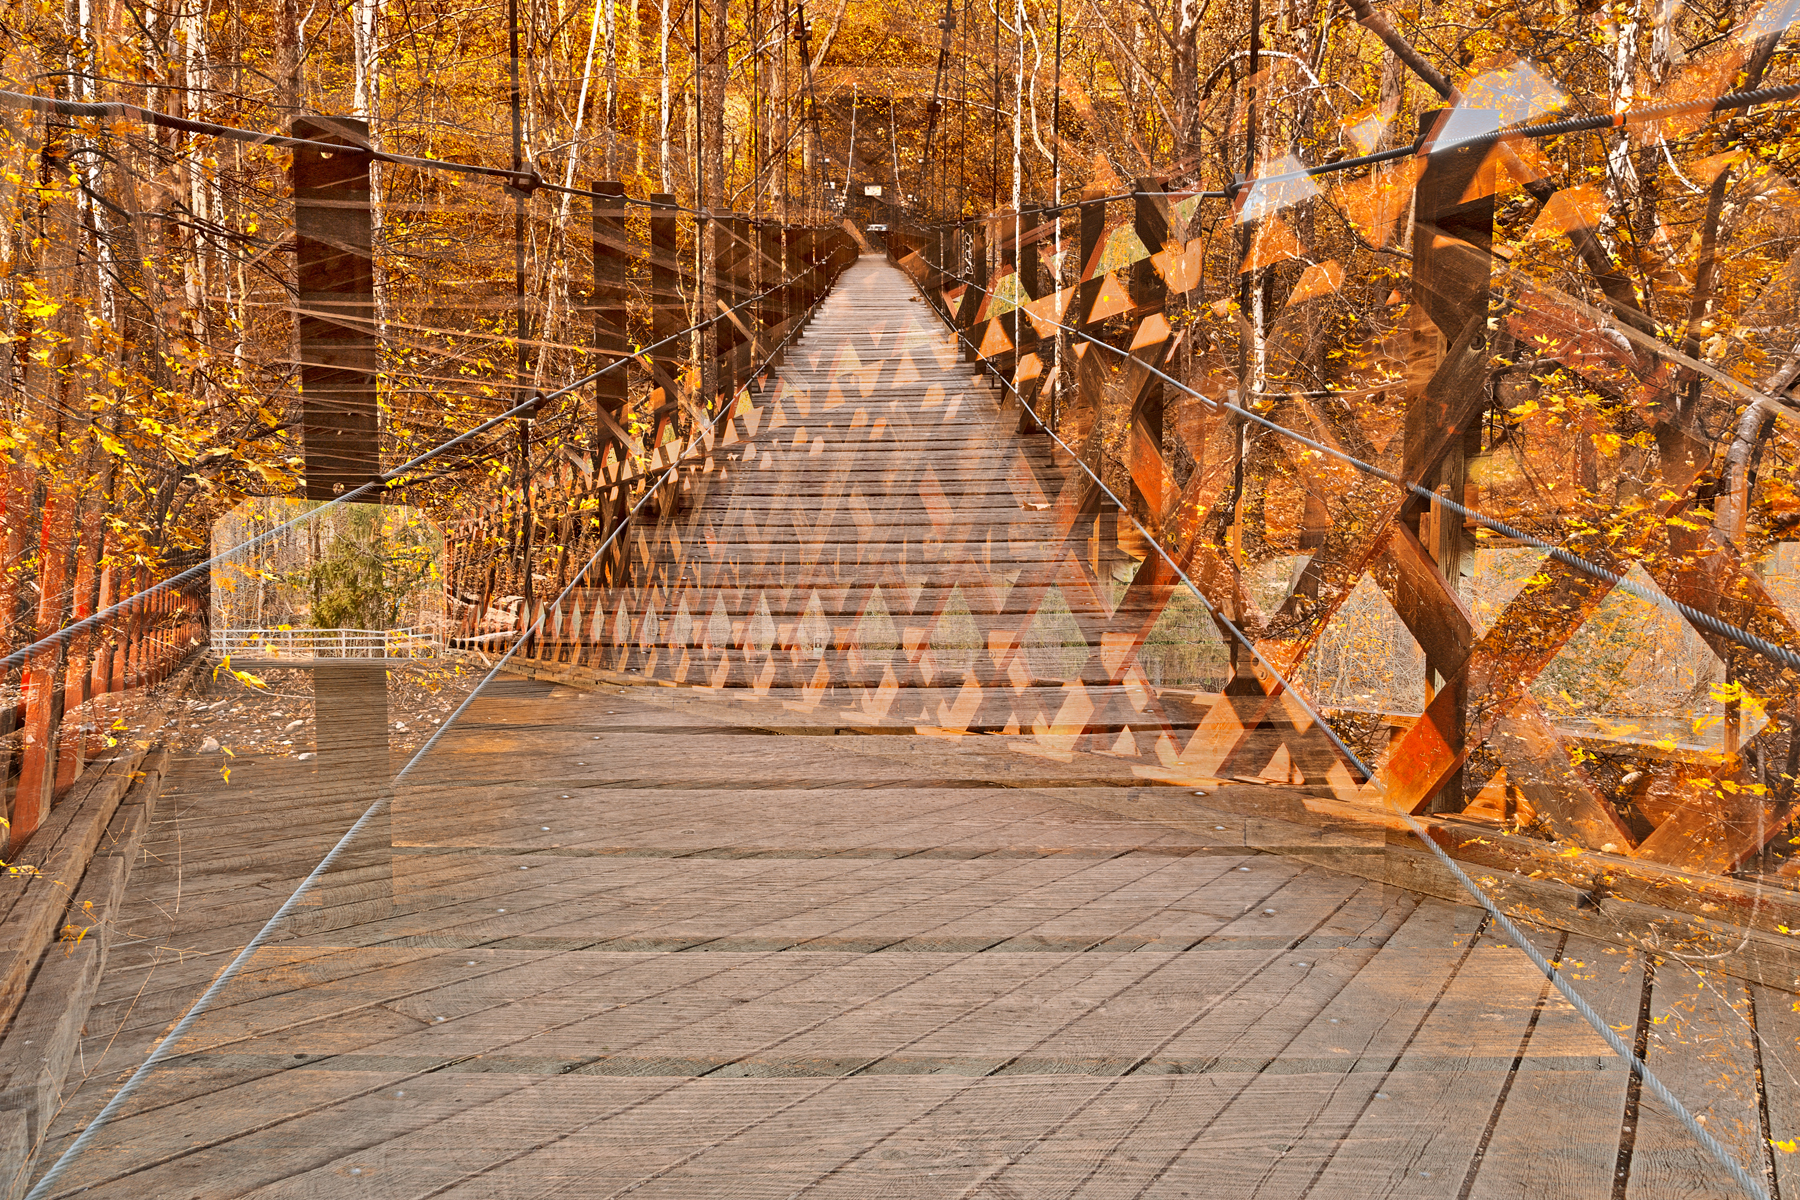 Bridging Perspectives, Abstract, Planks, Scene, Sauck, HQ Photo